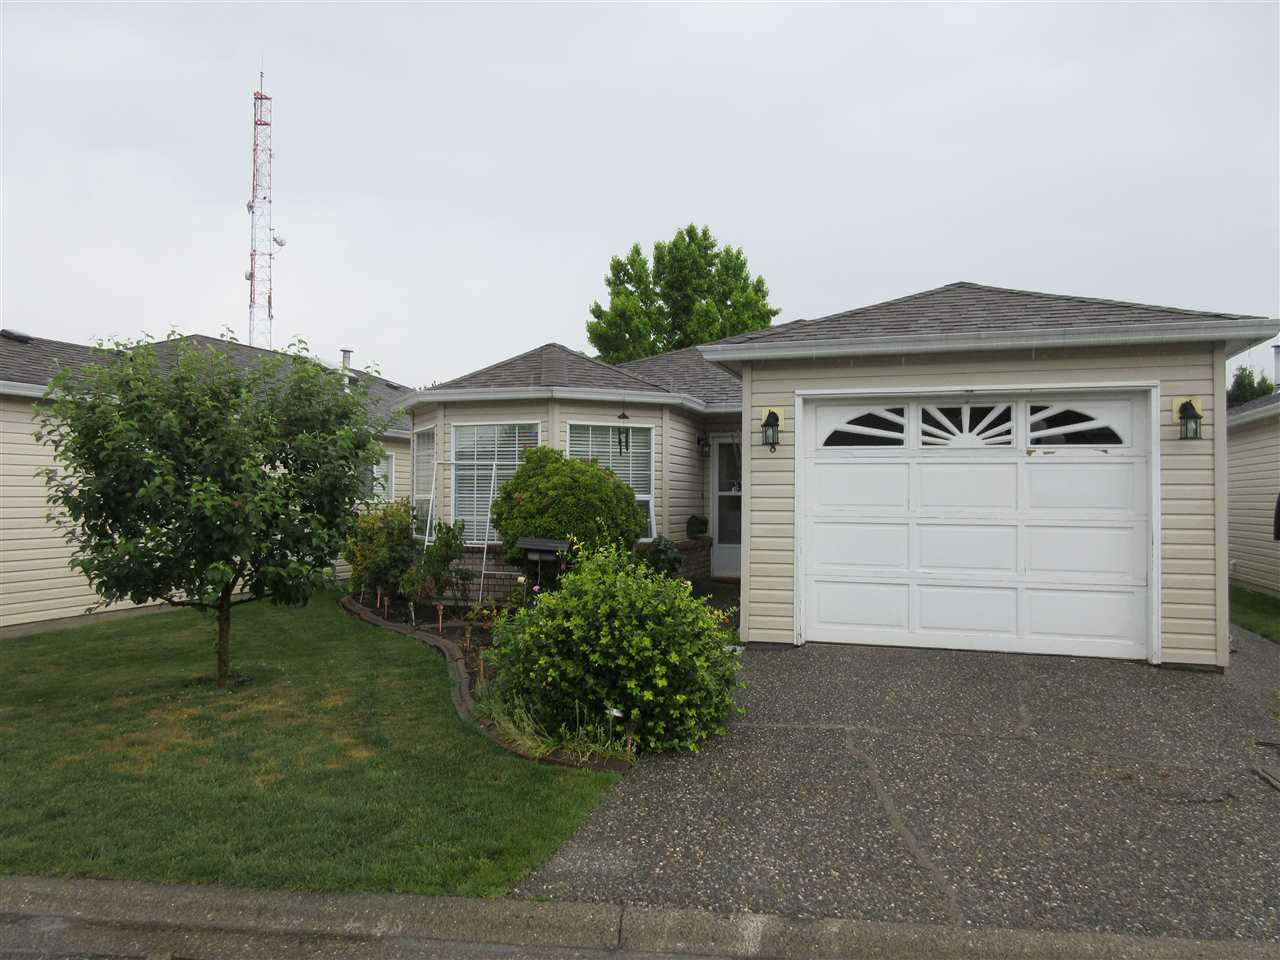 """Main Photo: 8 8500 YOUNG Road in Chilliwack: Chilliwack W Young-Well House for sale in """"Cottage Grove"""" : MLS®# R2377255"""